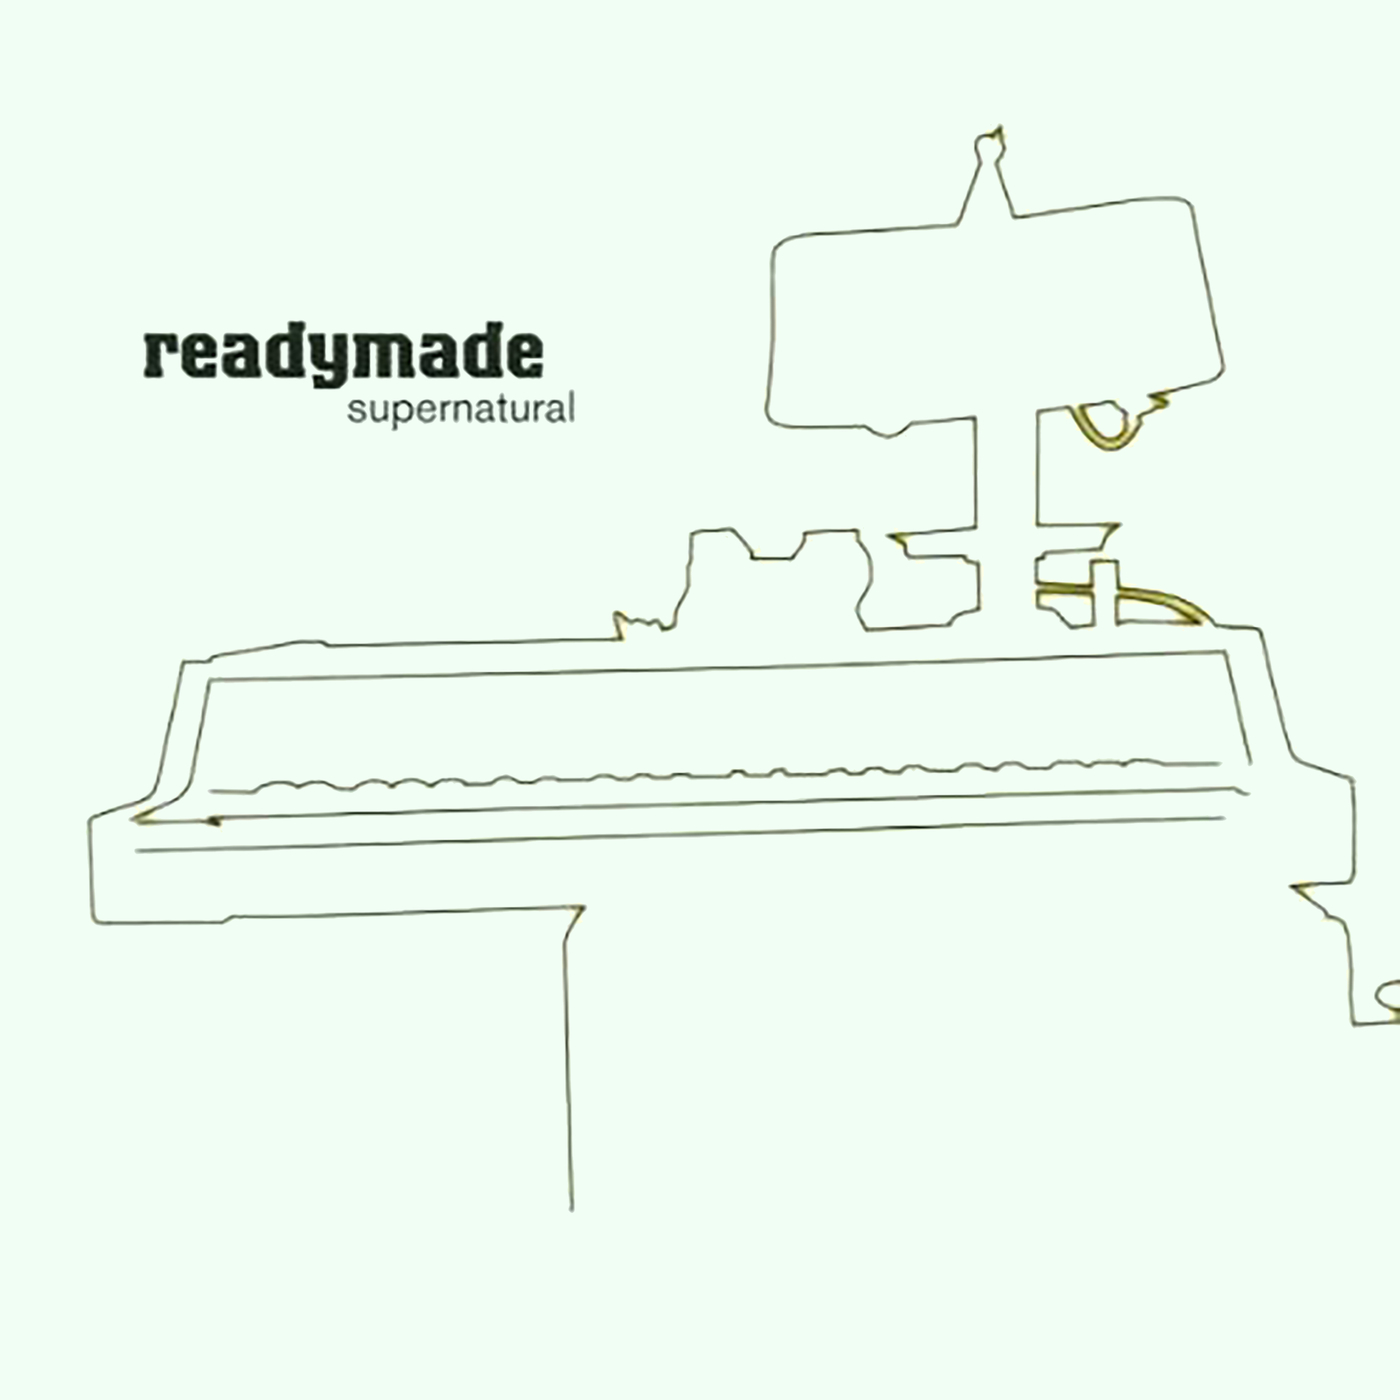 Supernatural - Readymade